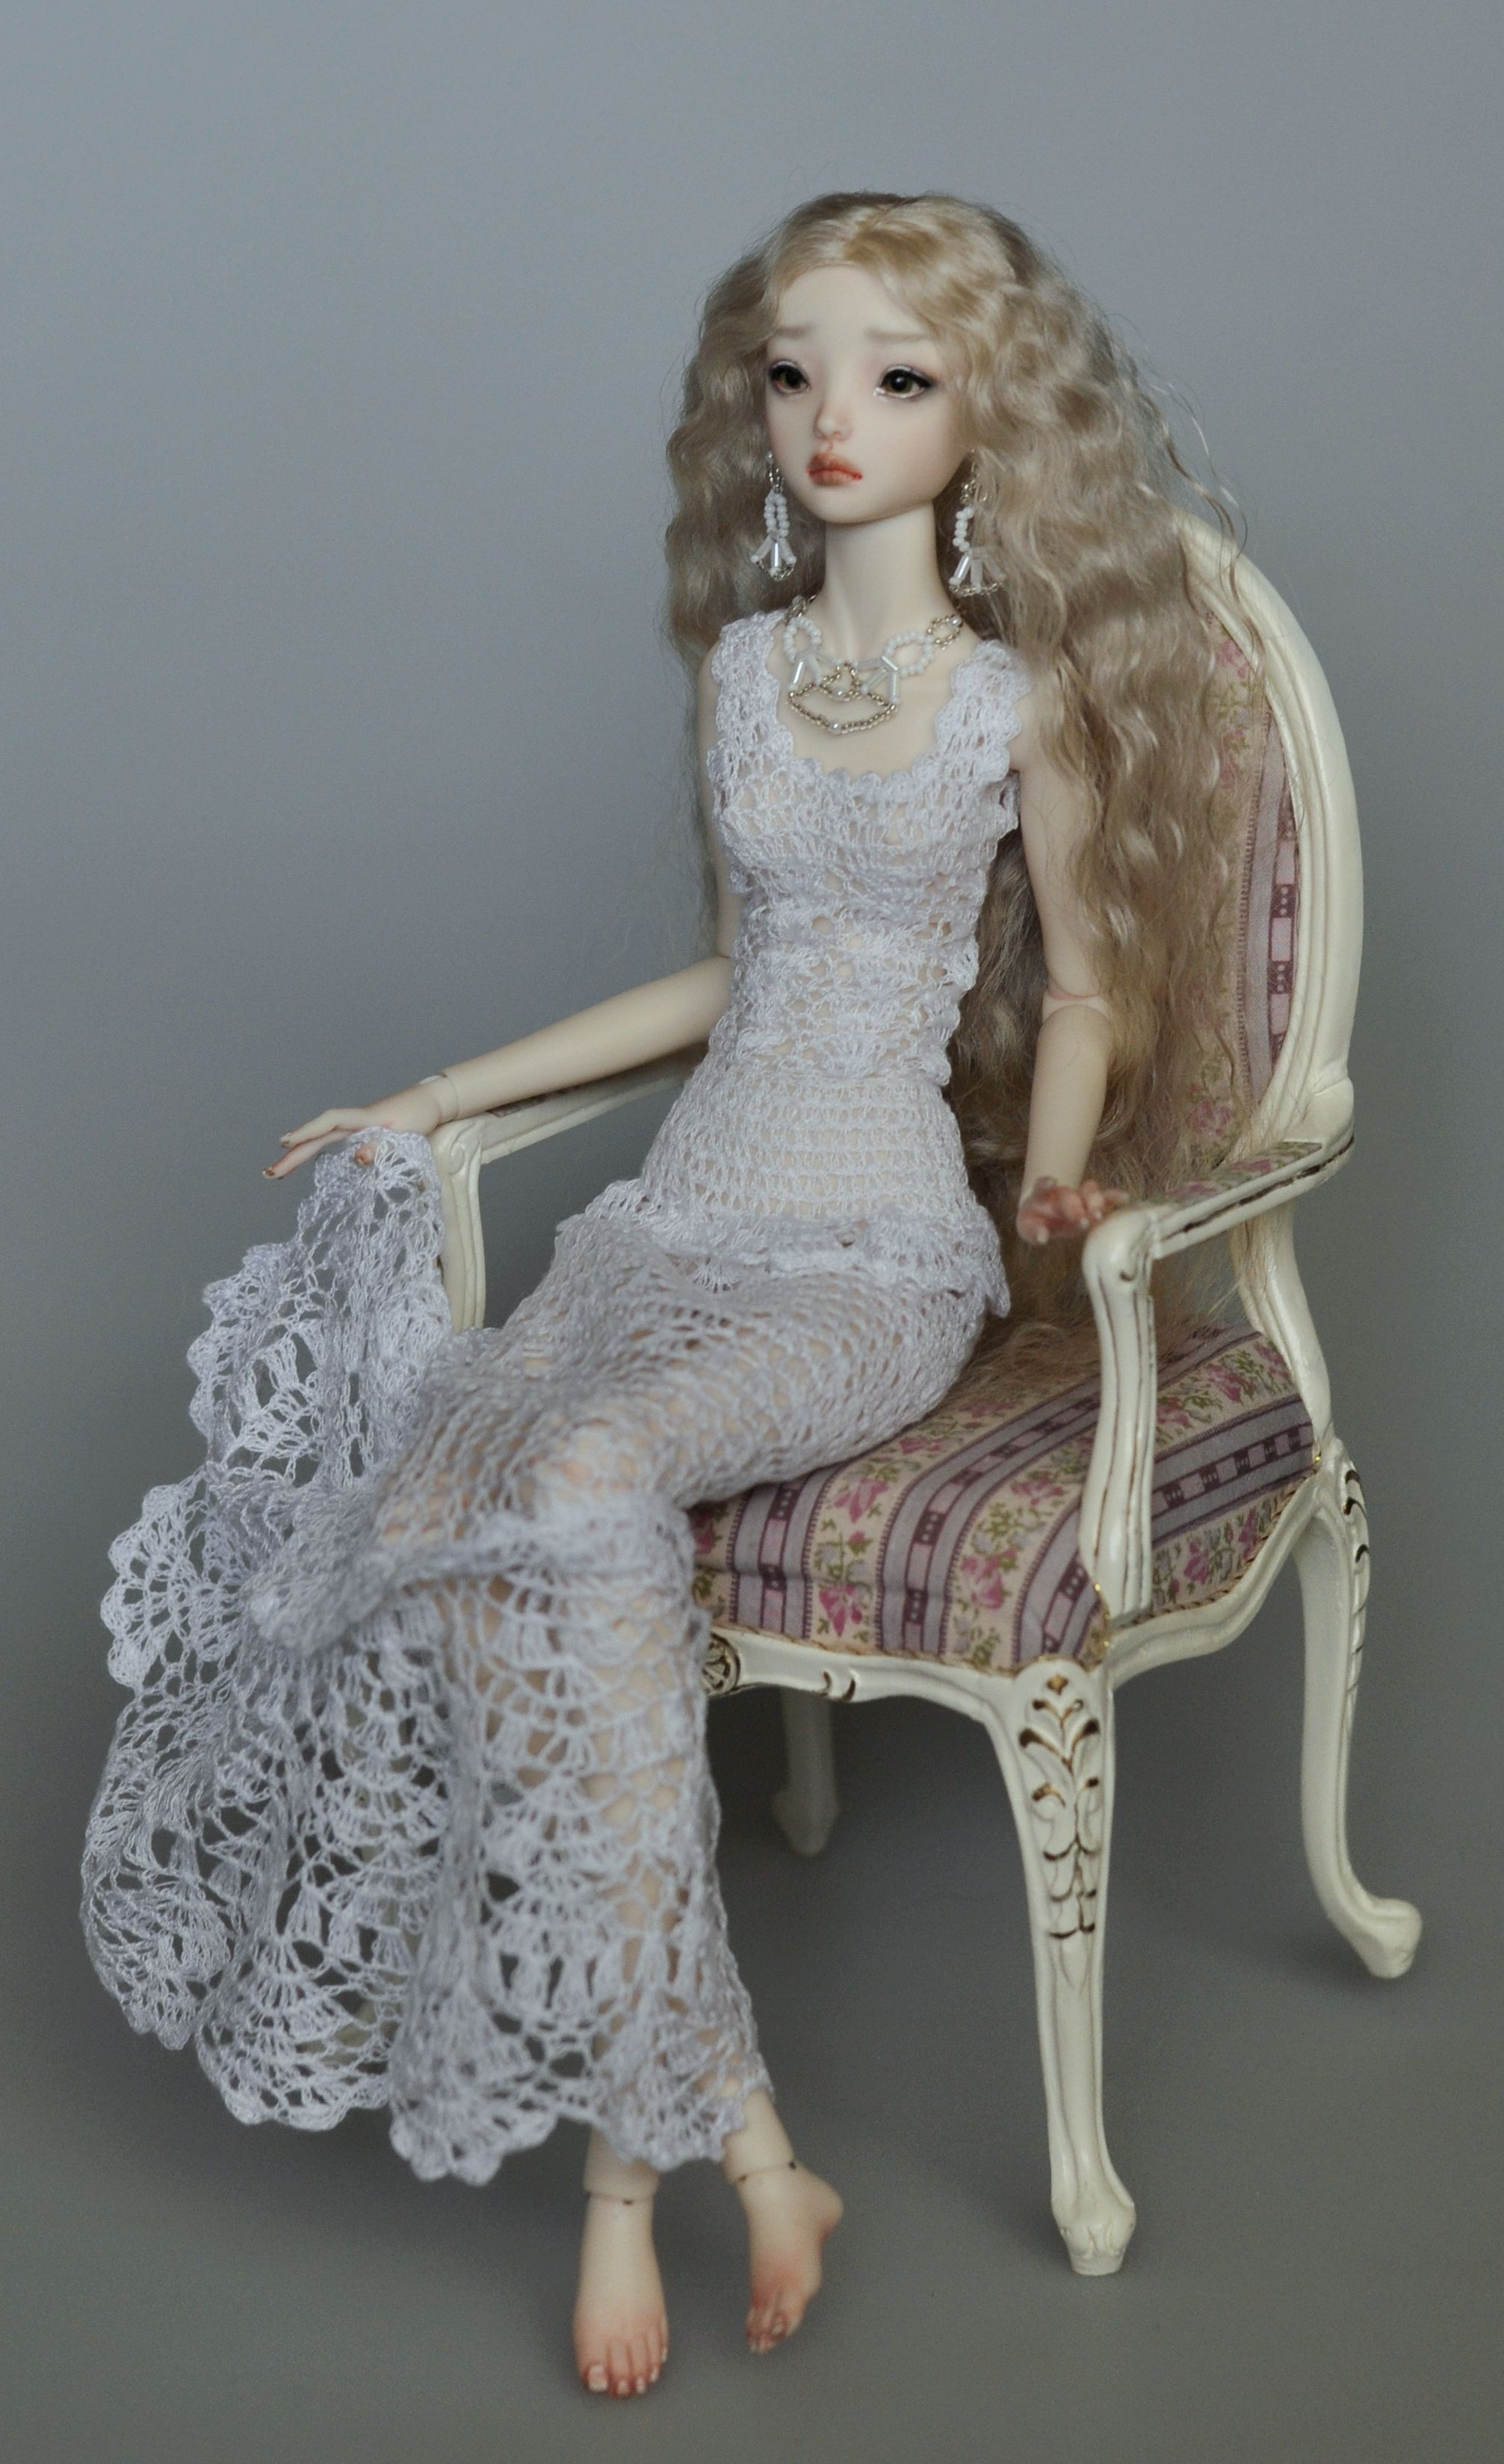 crochet doll dress | Hekel - Barbie | Pinterest | Barbie, Puppe und ...